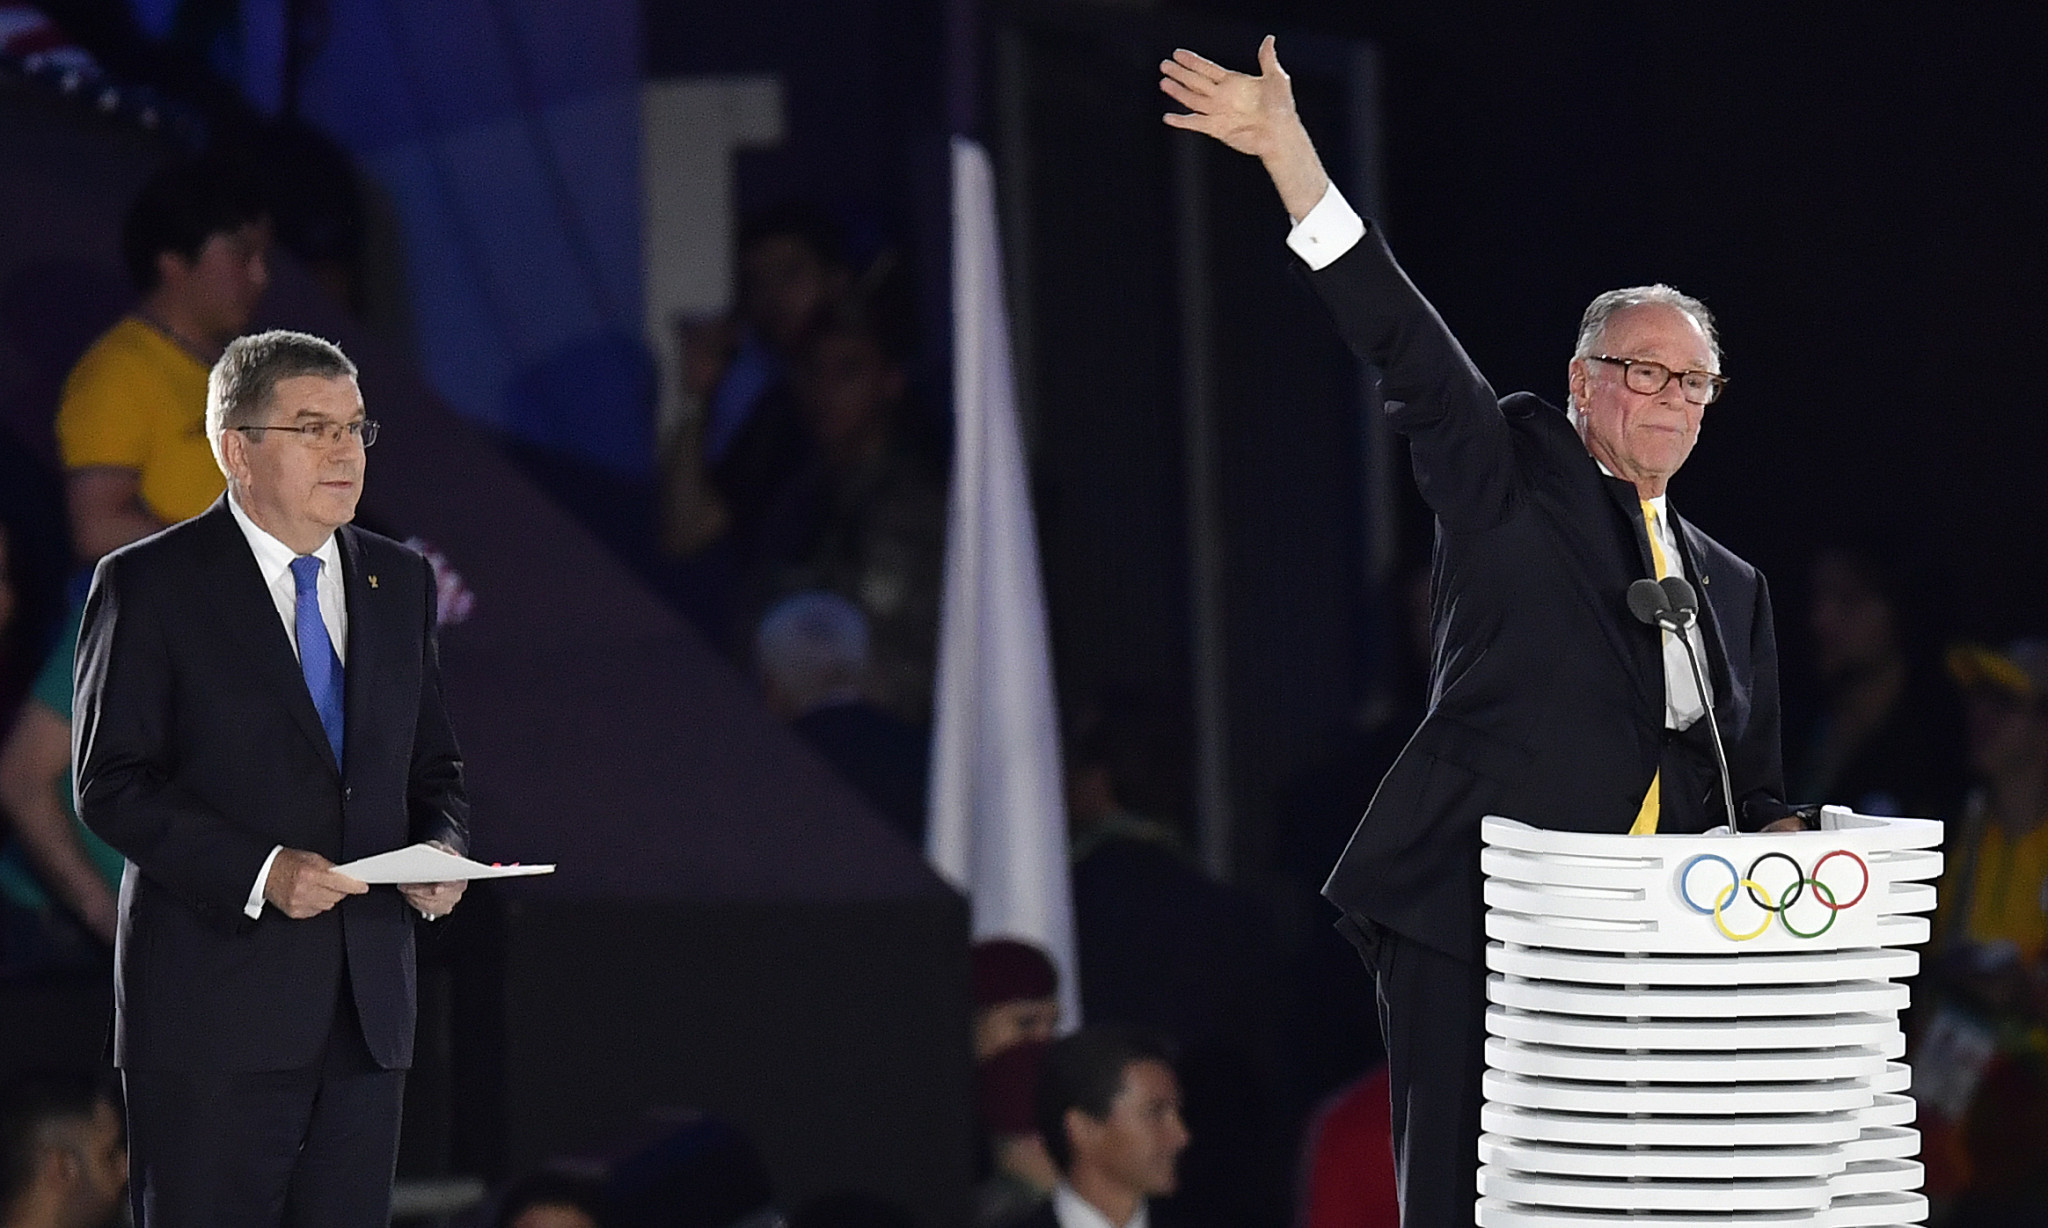 Carlos Nuzman, right, addressing the world at the Closing Ceremony of Rio 2016 ©Getty Images